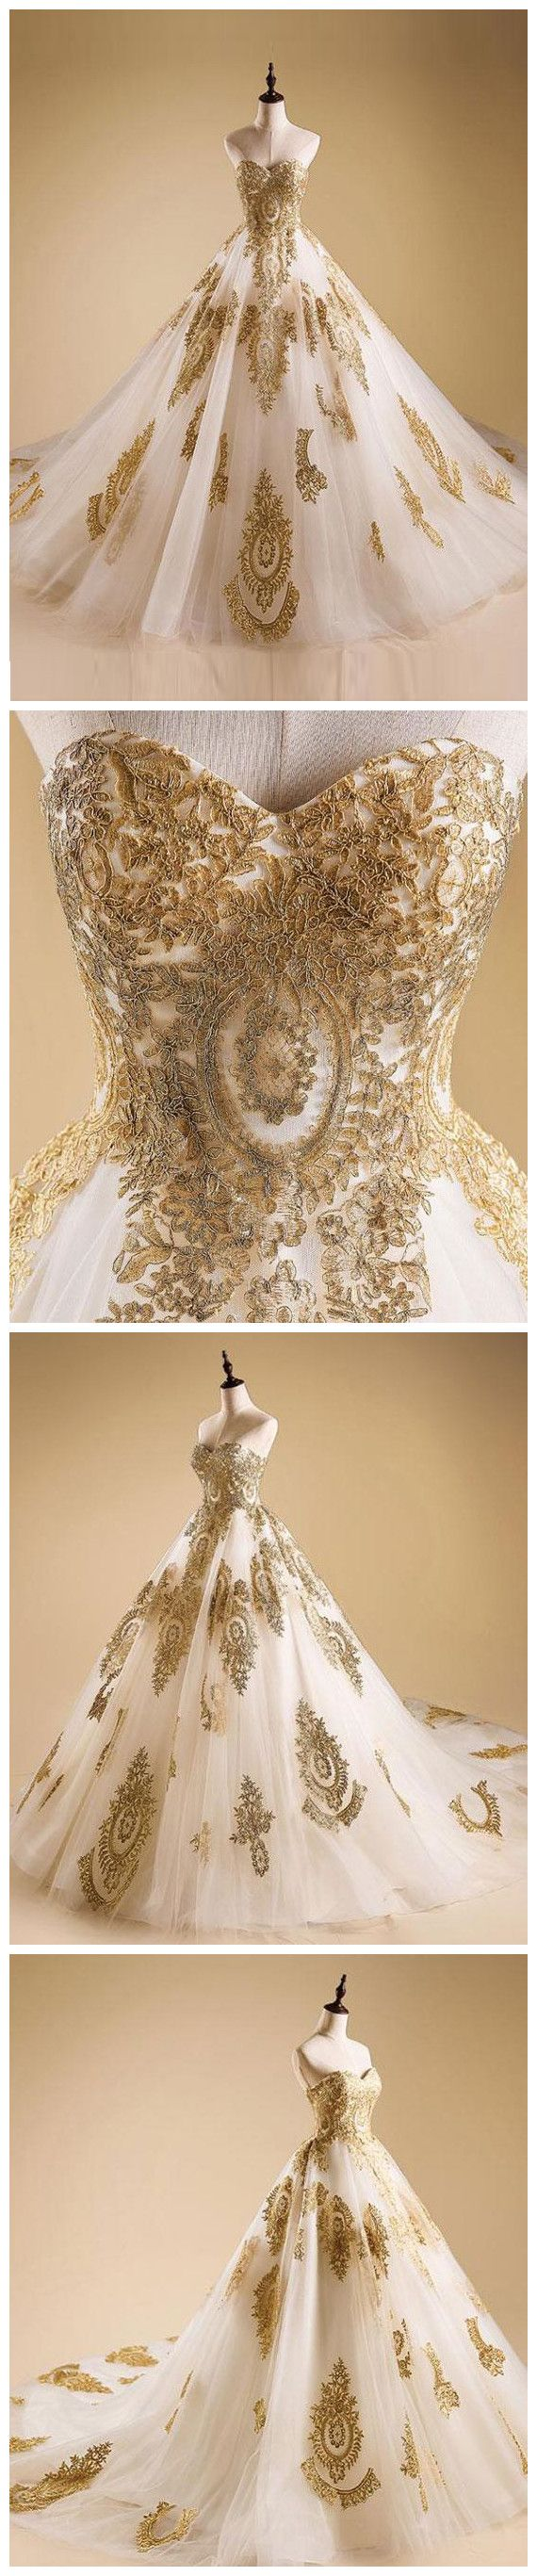 I would picture this as my Asgardian wedding gown!